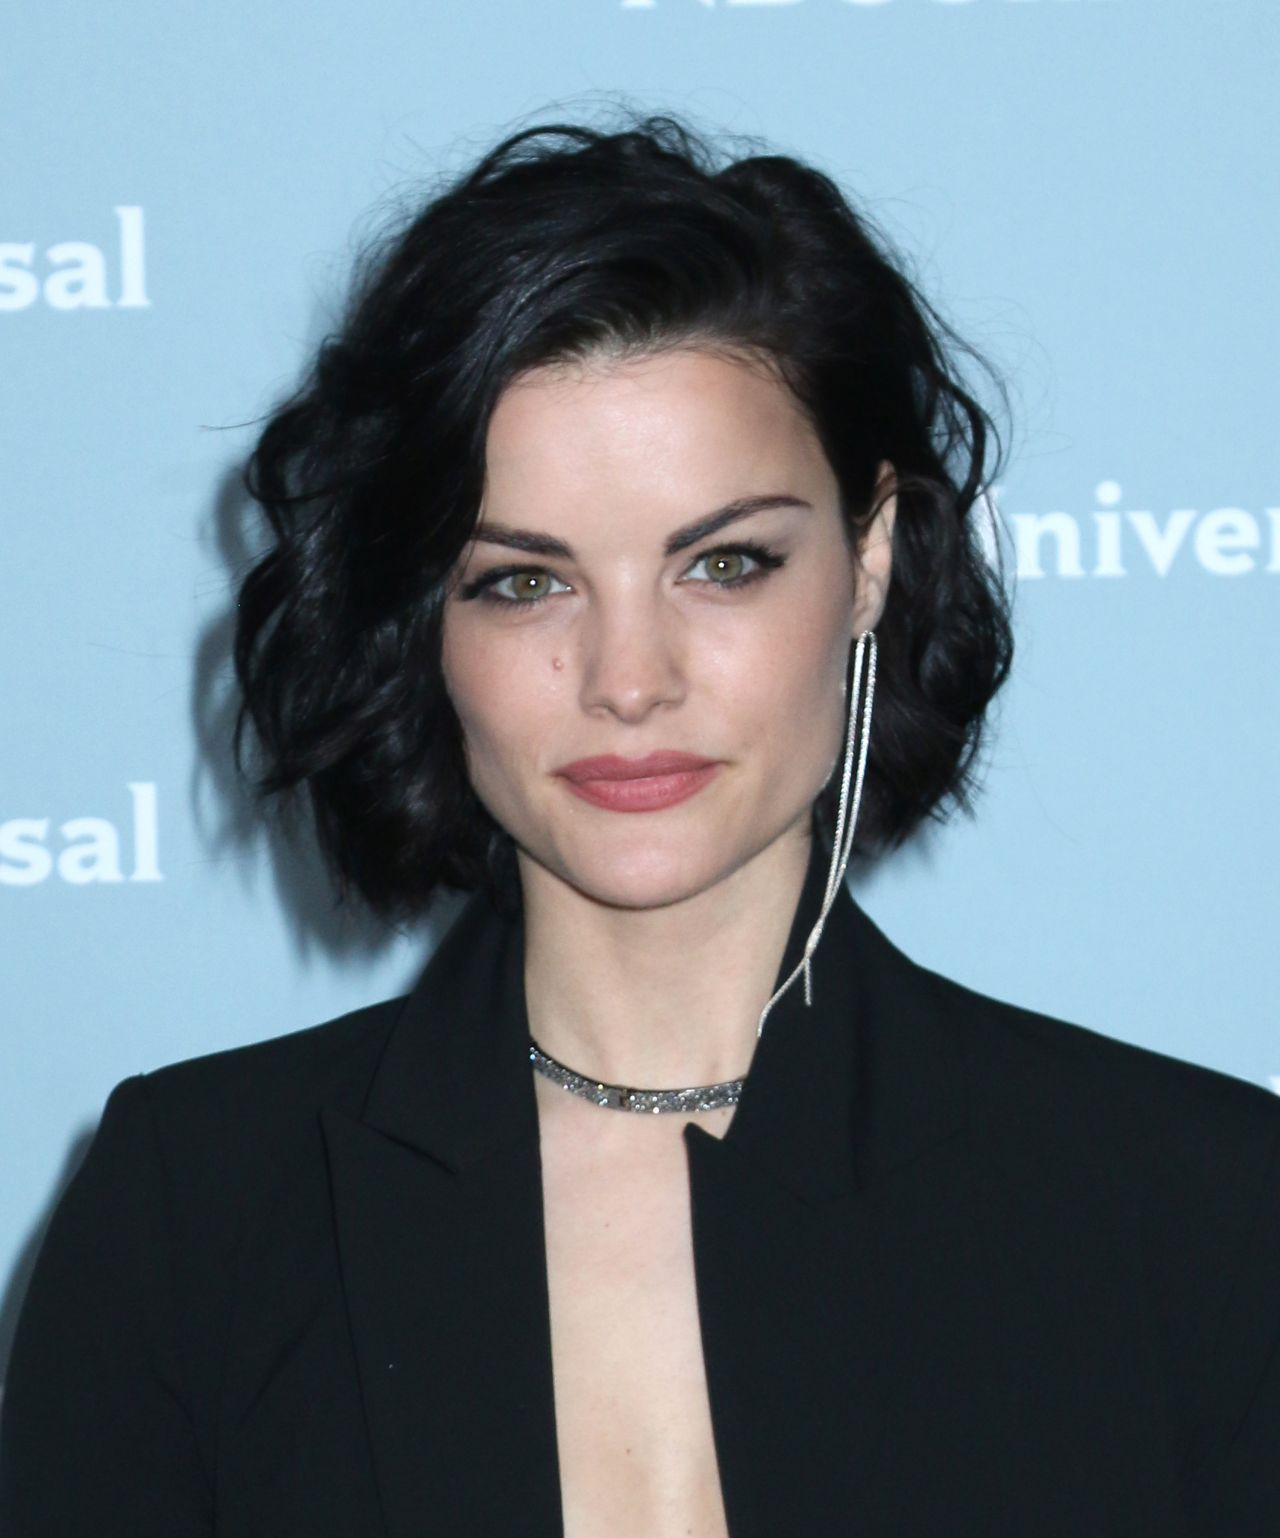 Jaimie Alexander Latest Photos Celebmafia